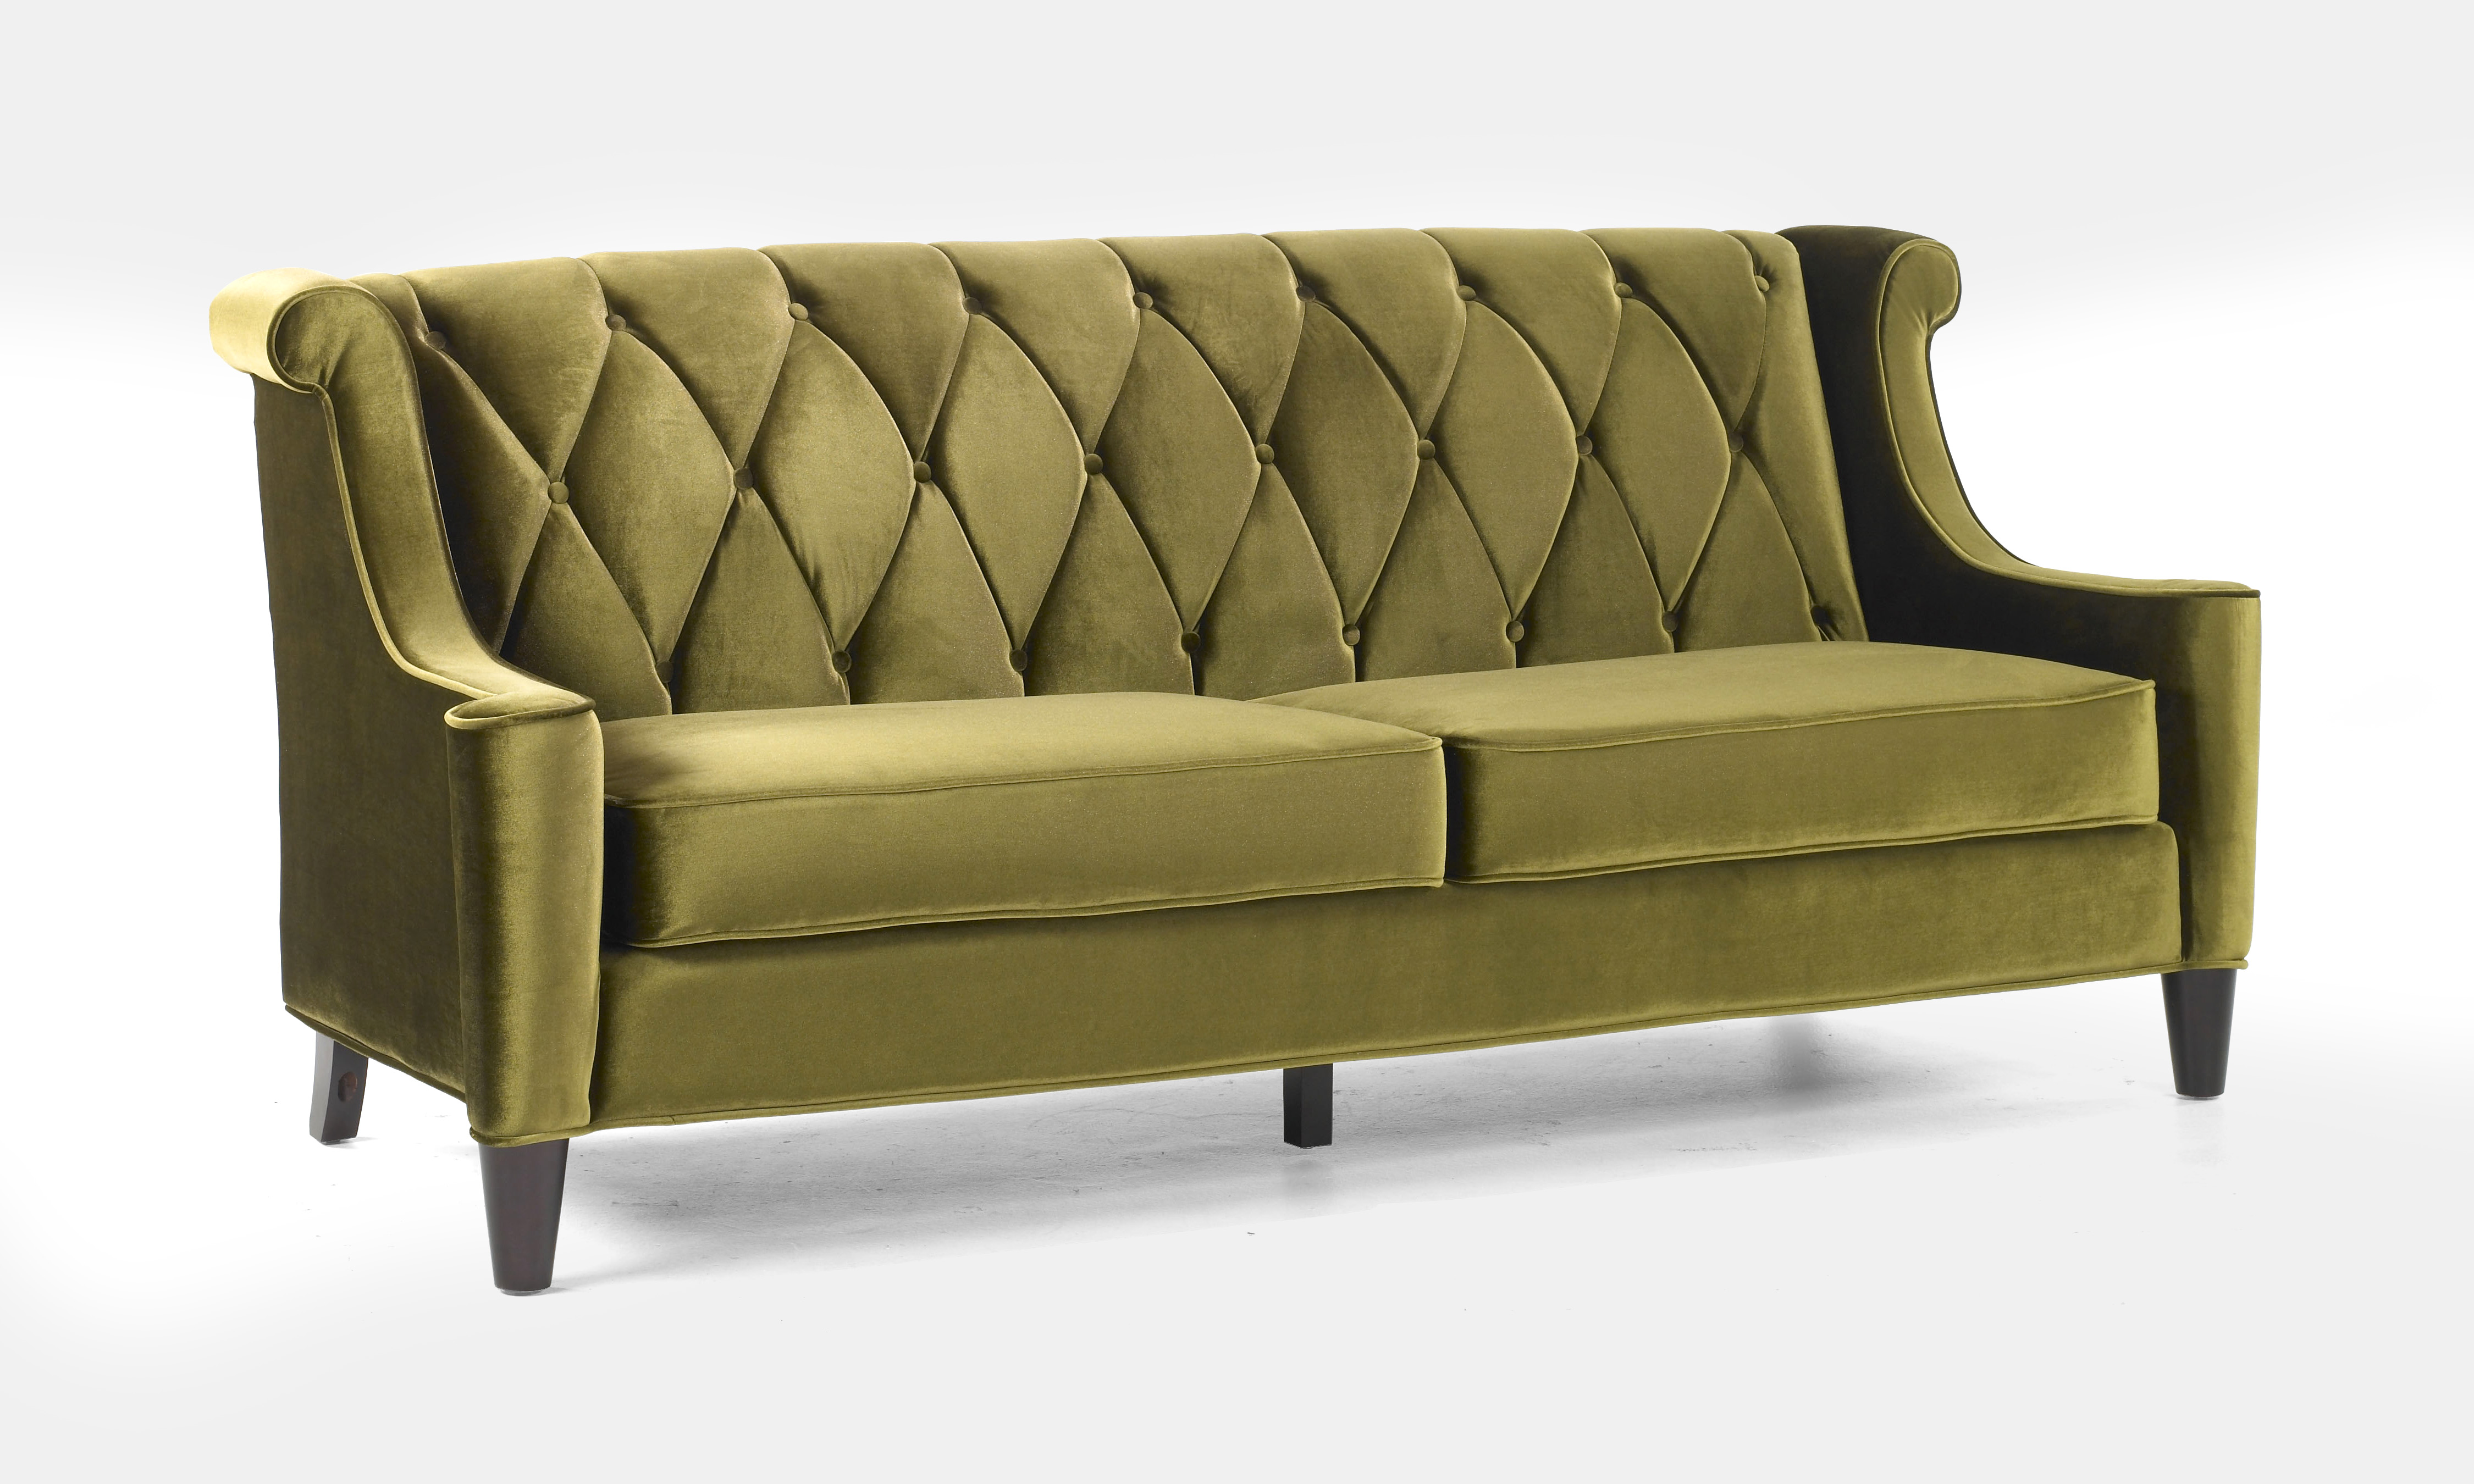 Barrister Green Tufted Velvet With Buttons Las Vegas